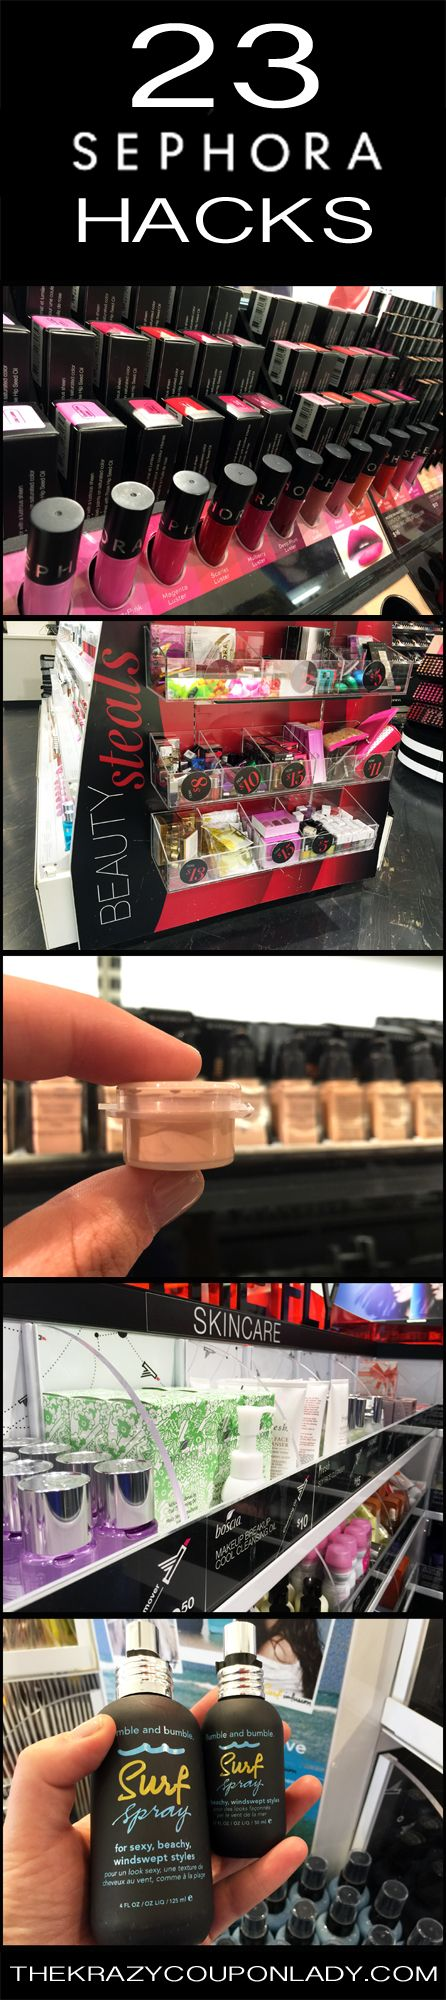 23 Insider Hacks from a Sephora Employee